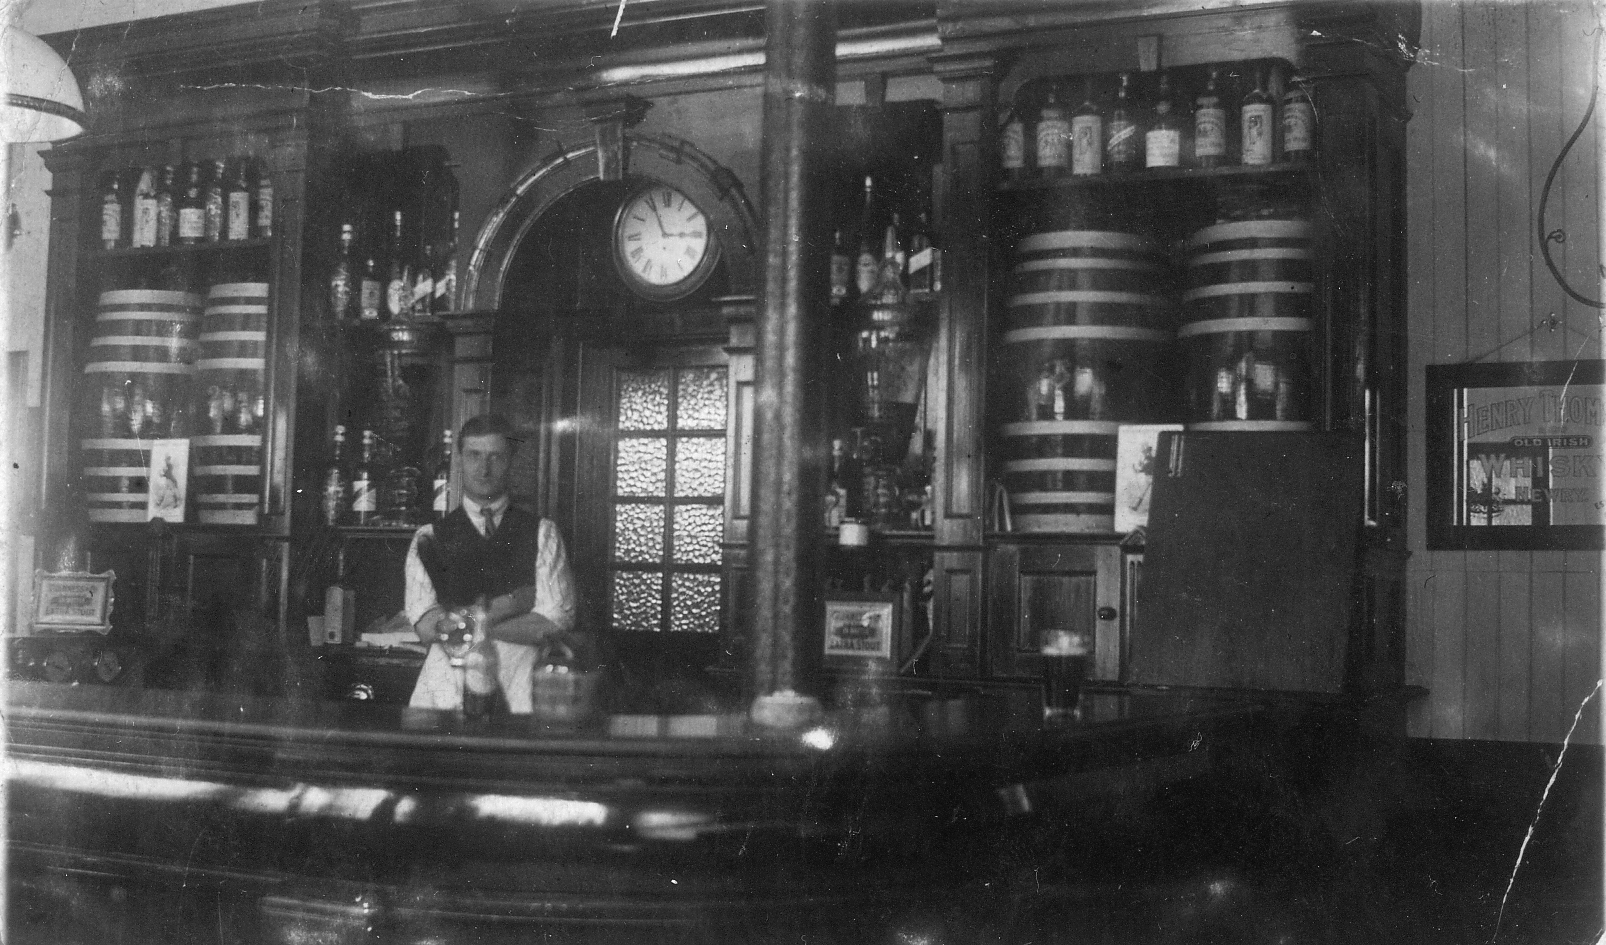 Barman Standing Behind The Bar c.1910